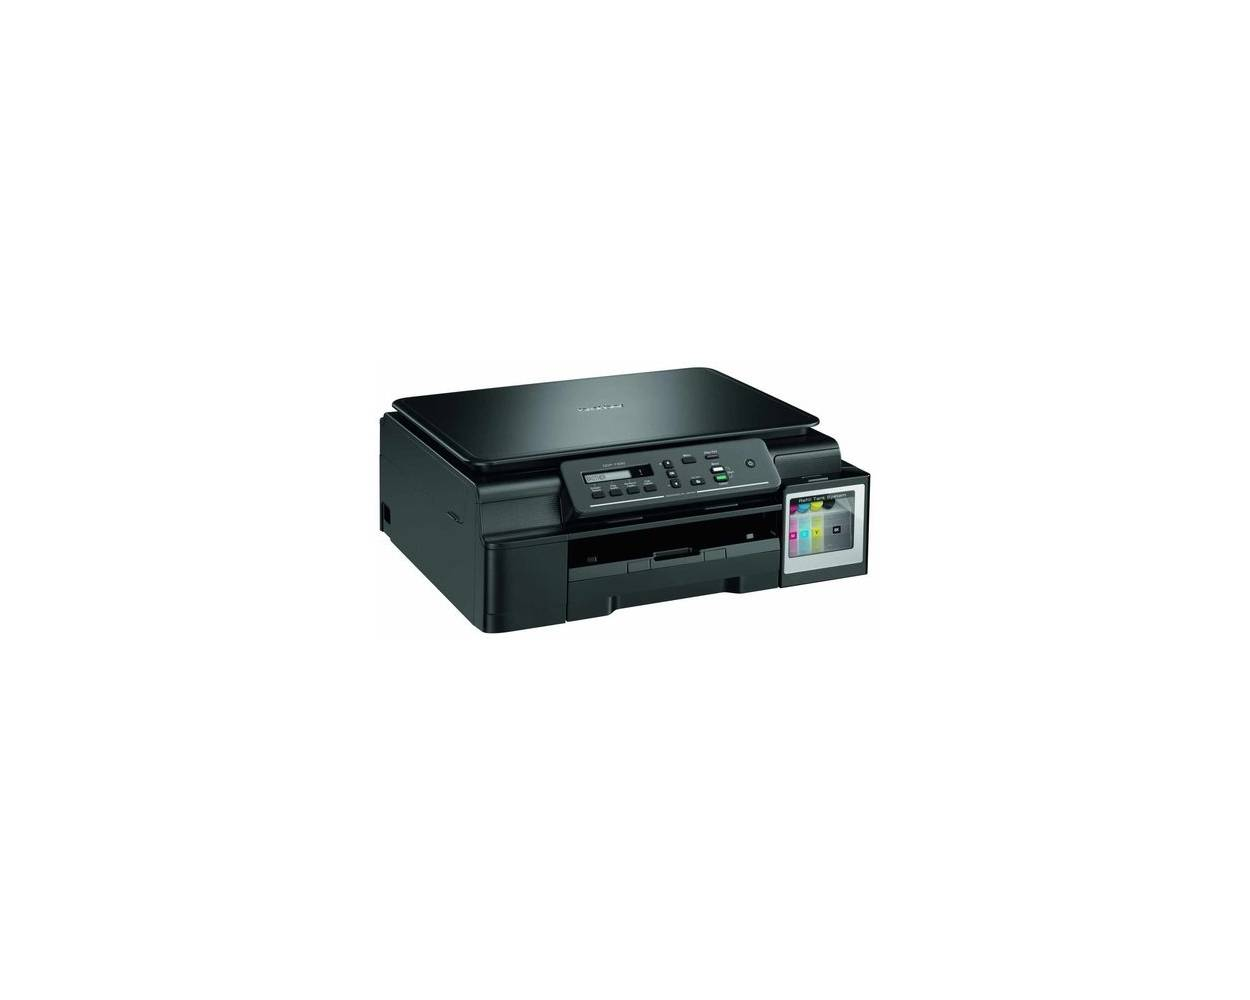 Brother Ink Tank Colour Printer DCP-T300